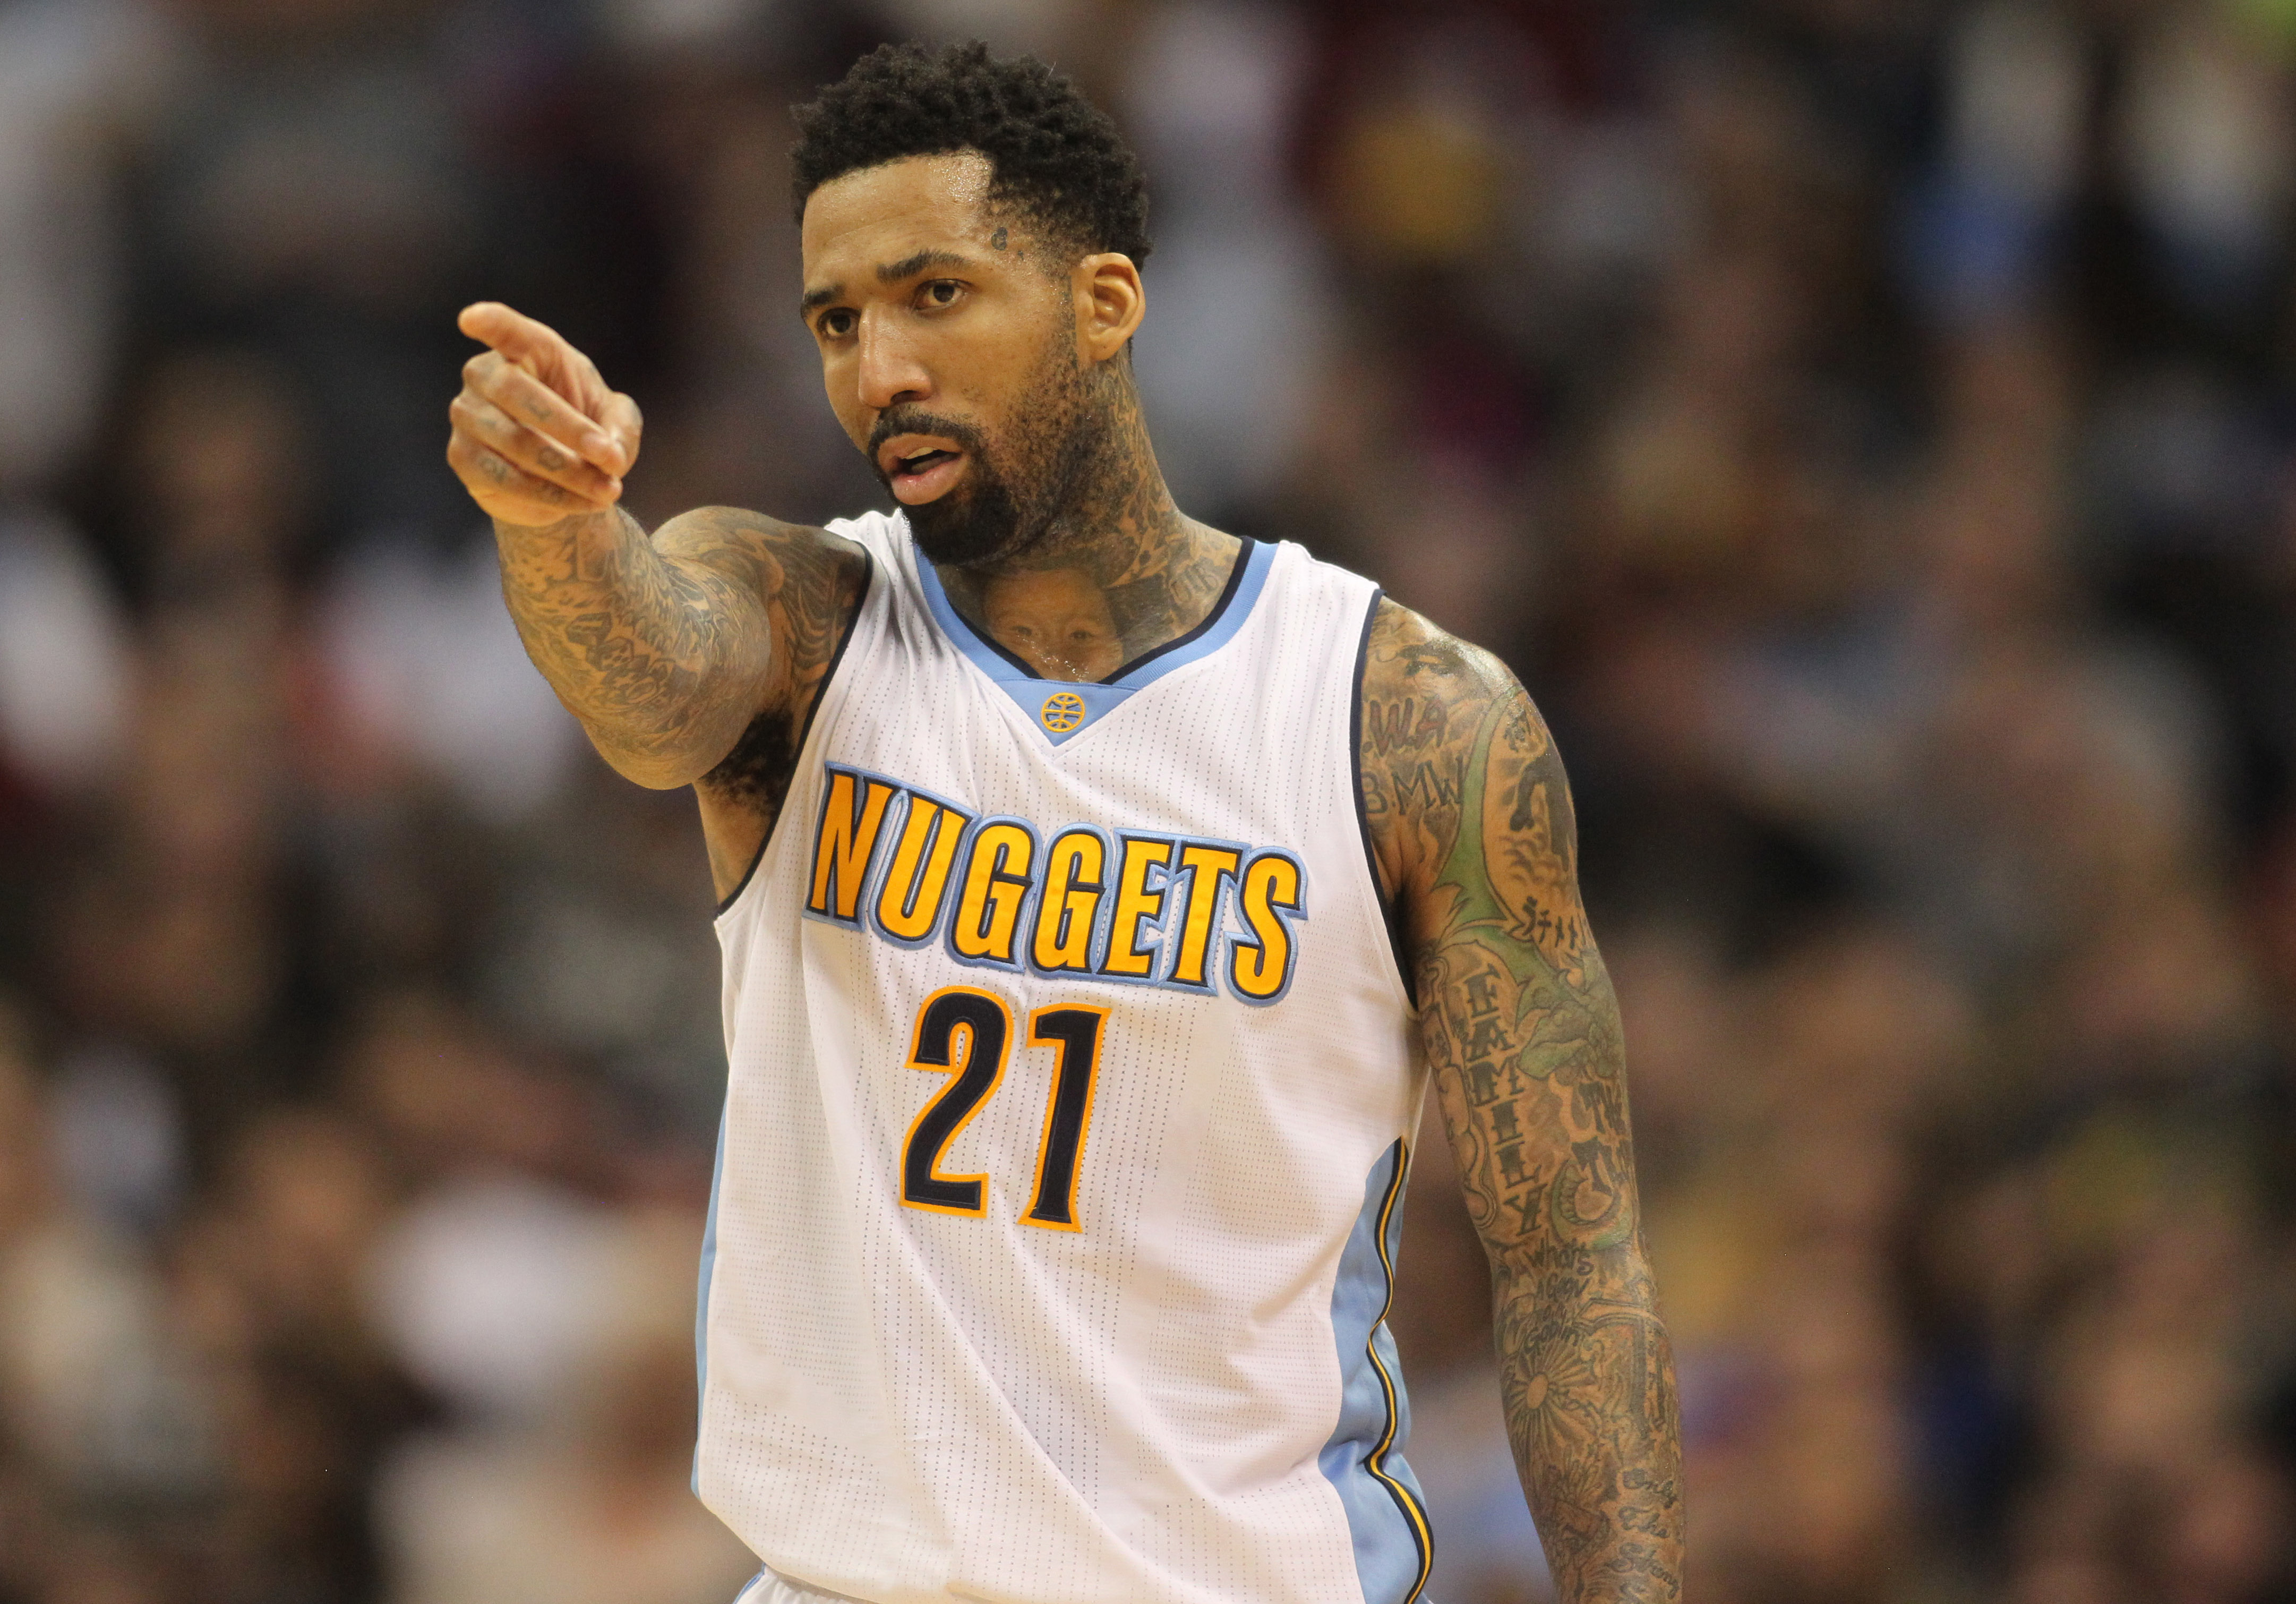 Wilson Chandler Trade Rumors: 5 Teams That Should Trade For Nuggets SF